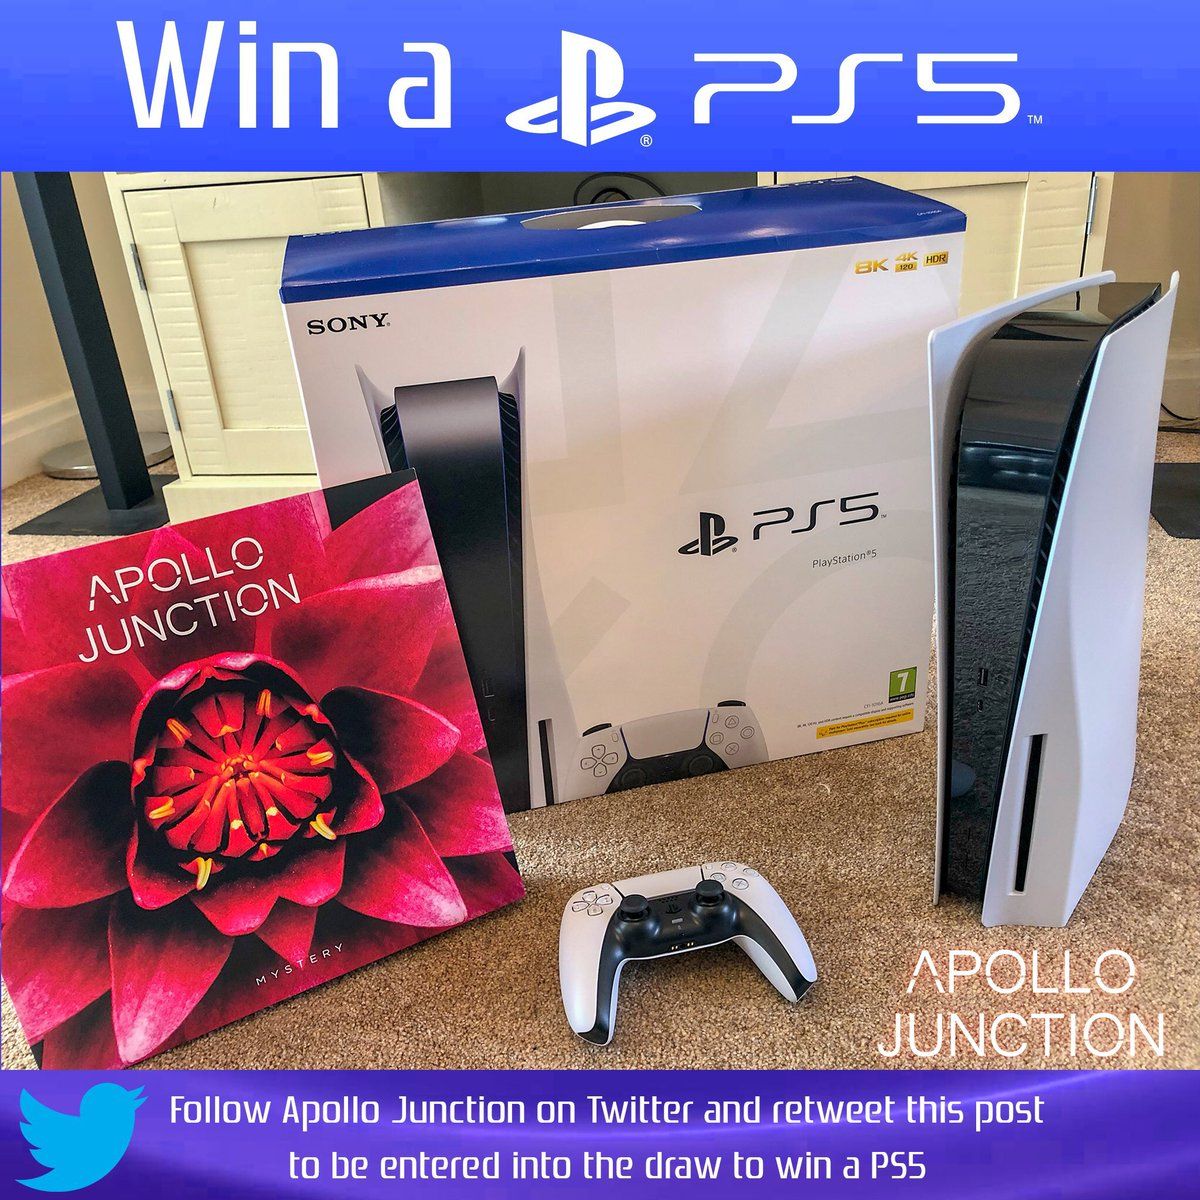 What a week! Messages about our album from Jon Richardson and Liam Cooper 🤯 and tomorrow as a Christmas present - we're giving away a #ps5 #competition #win #PlayStation5 - simply because we appreciate all your support. We'll give signed albums too! 9pm tomorrow. FOLLOW & RT!